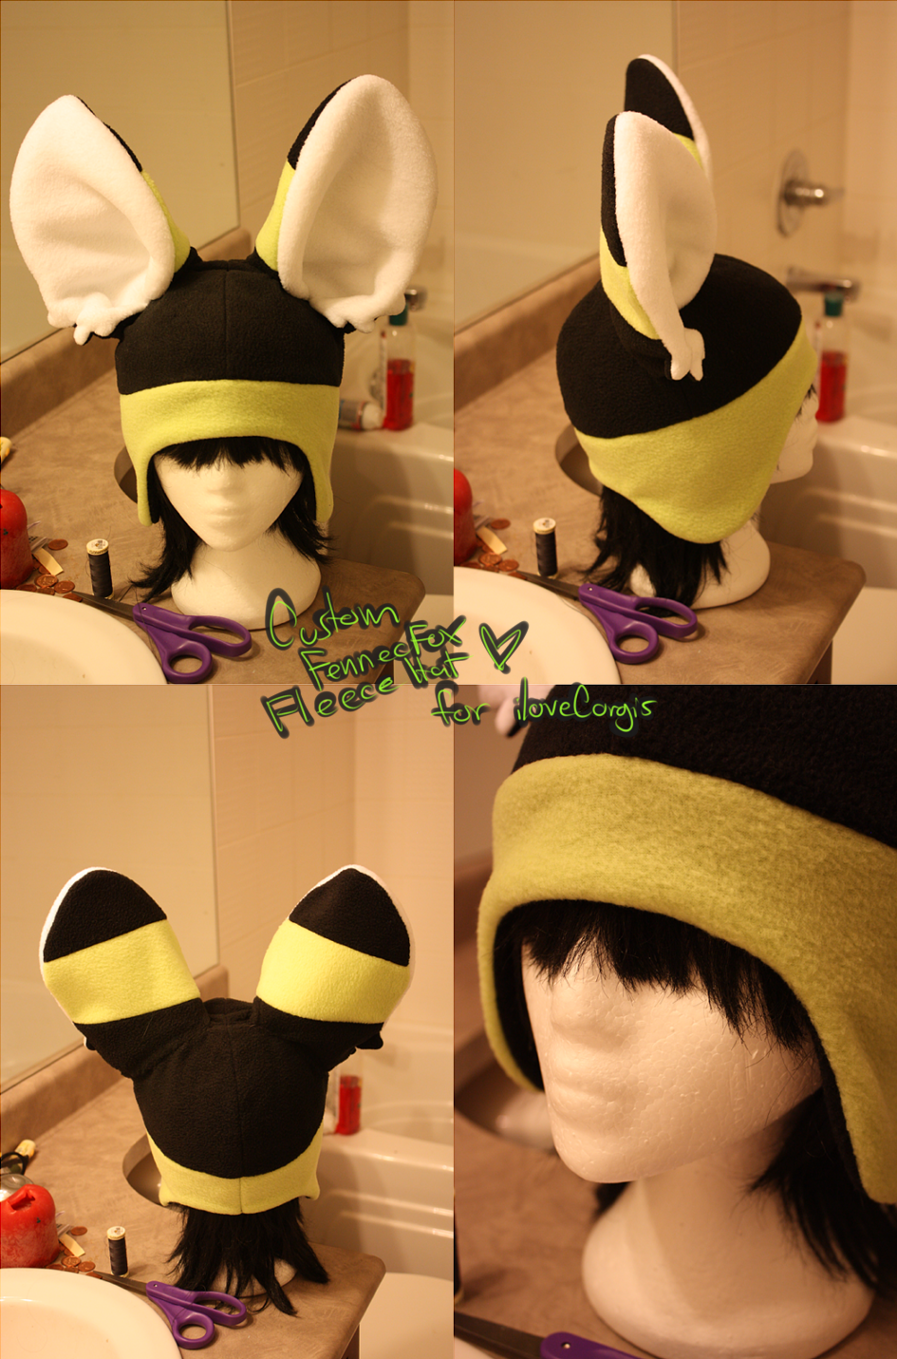 +FleeceHat:Custom+ For iLoveCorgis. by Stephys-Adoptables